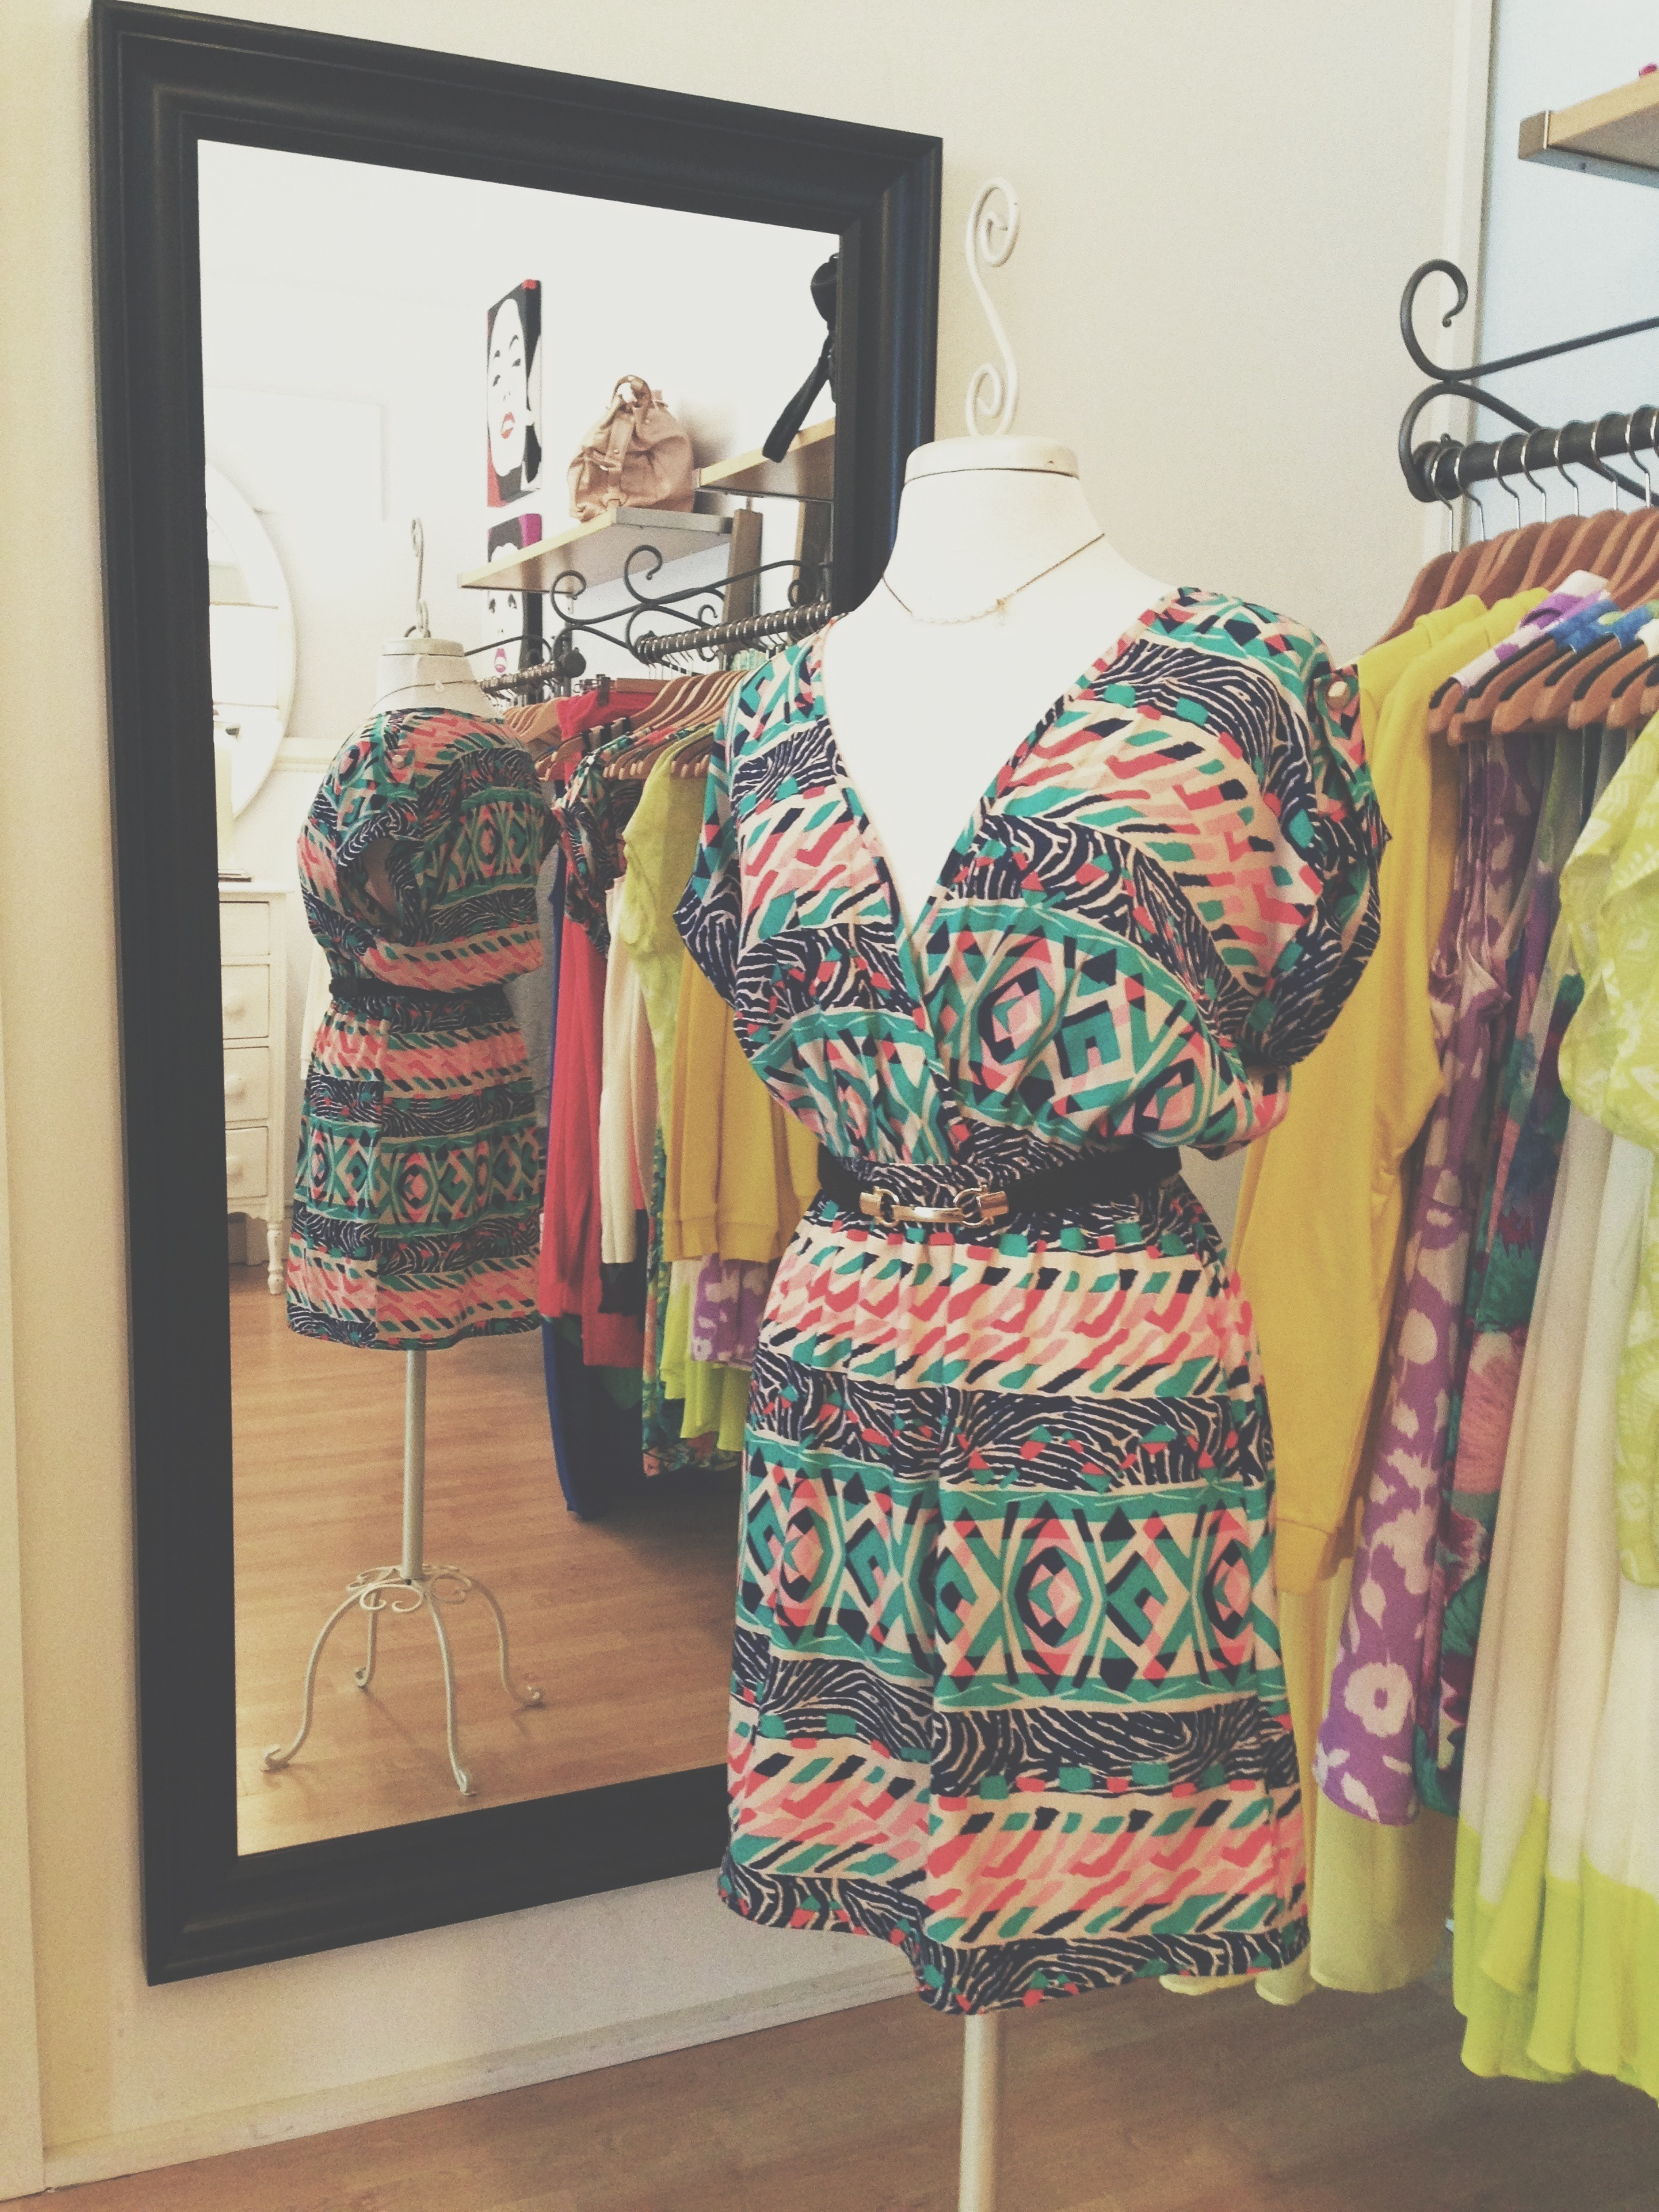 Did I mention we have tribal print?